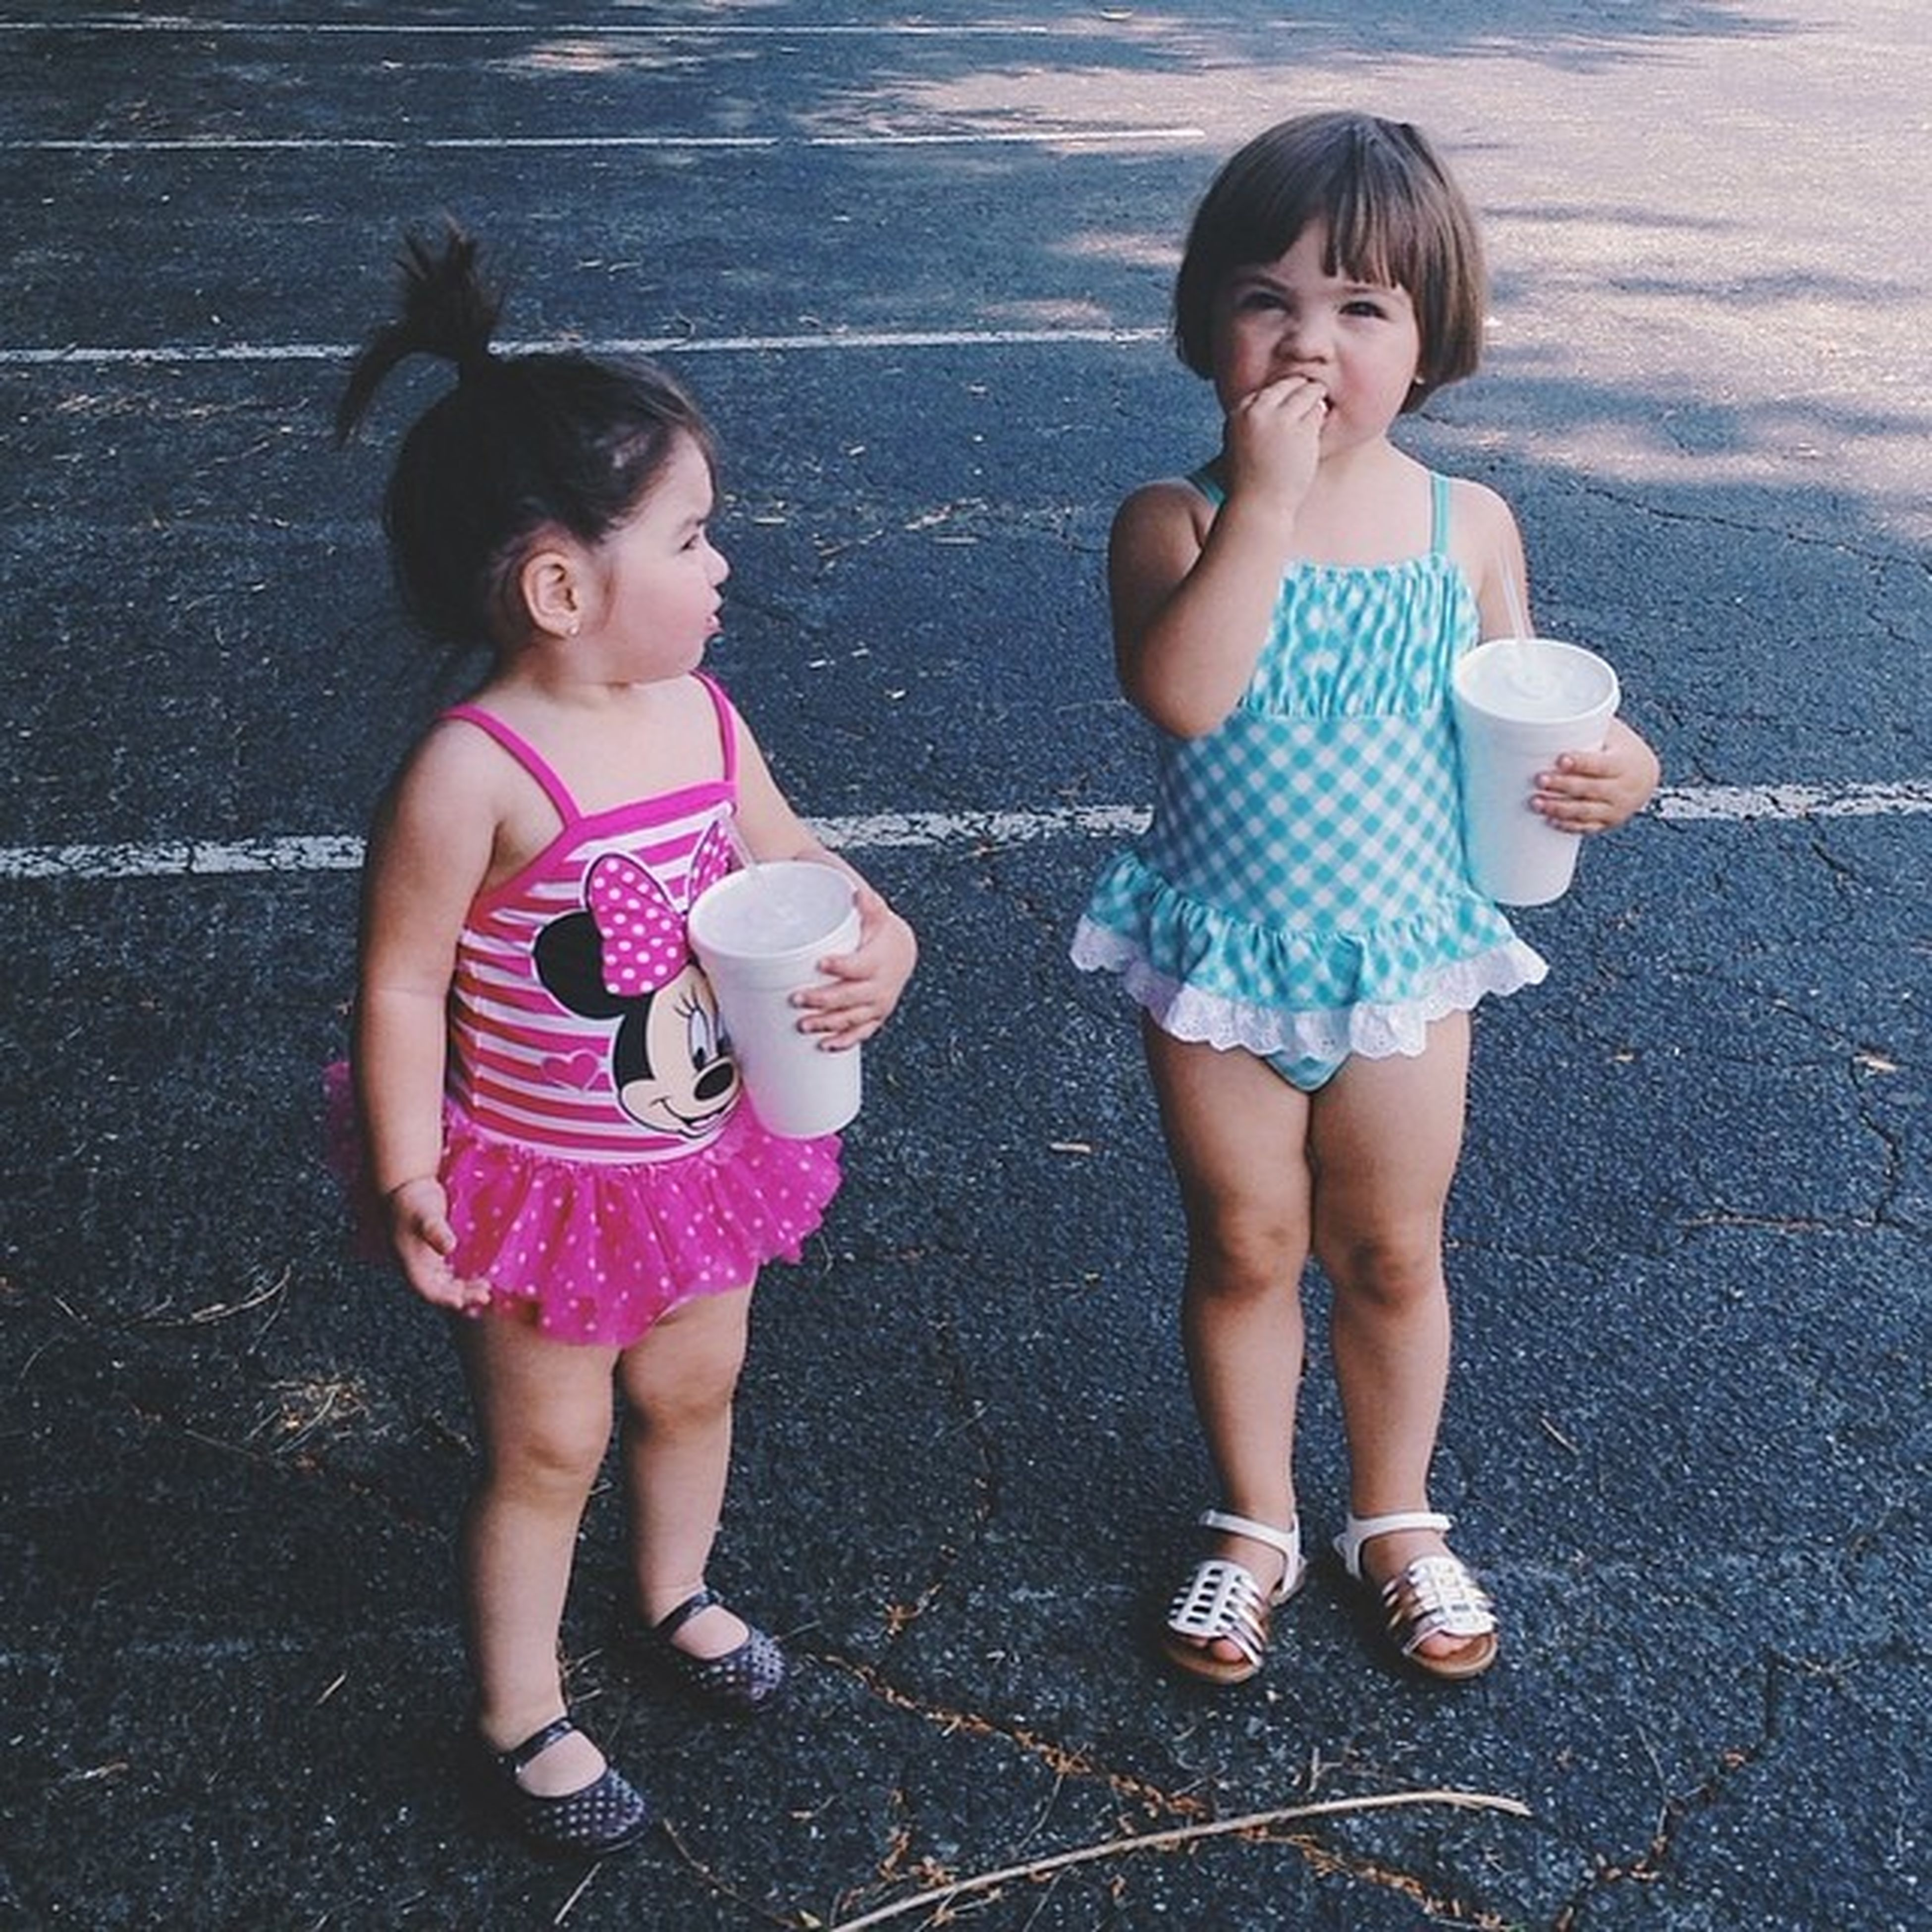 childhood, elementary age, person, full length, girls, cute, casual clothing, lifestyles, innocence, boys, happiness, leisure activity, front view, portrait, looking at camera, togetherness, smiling, standing